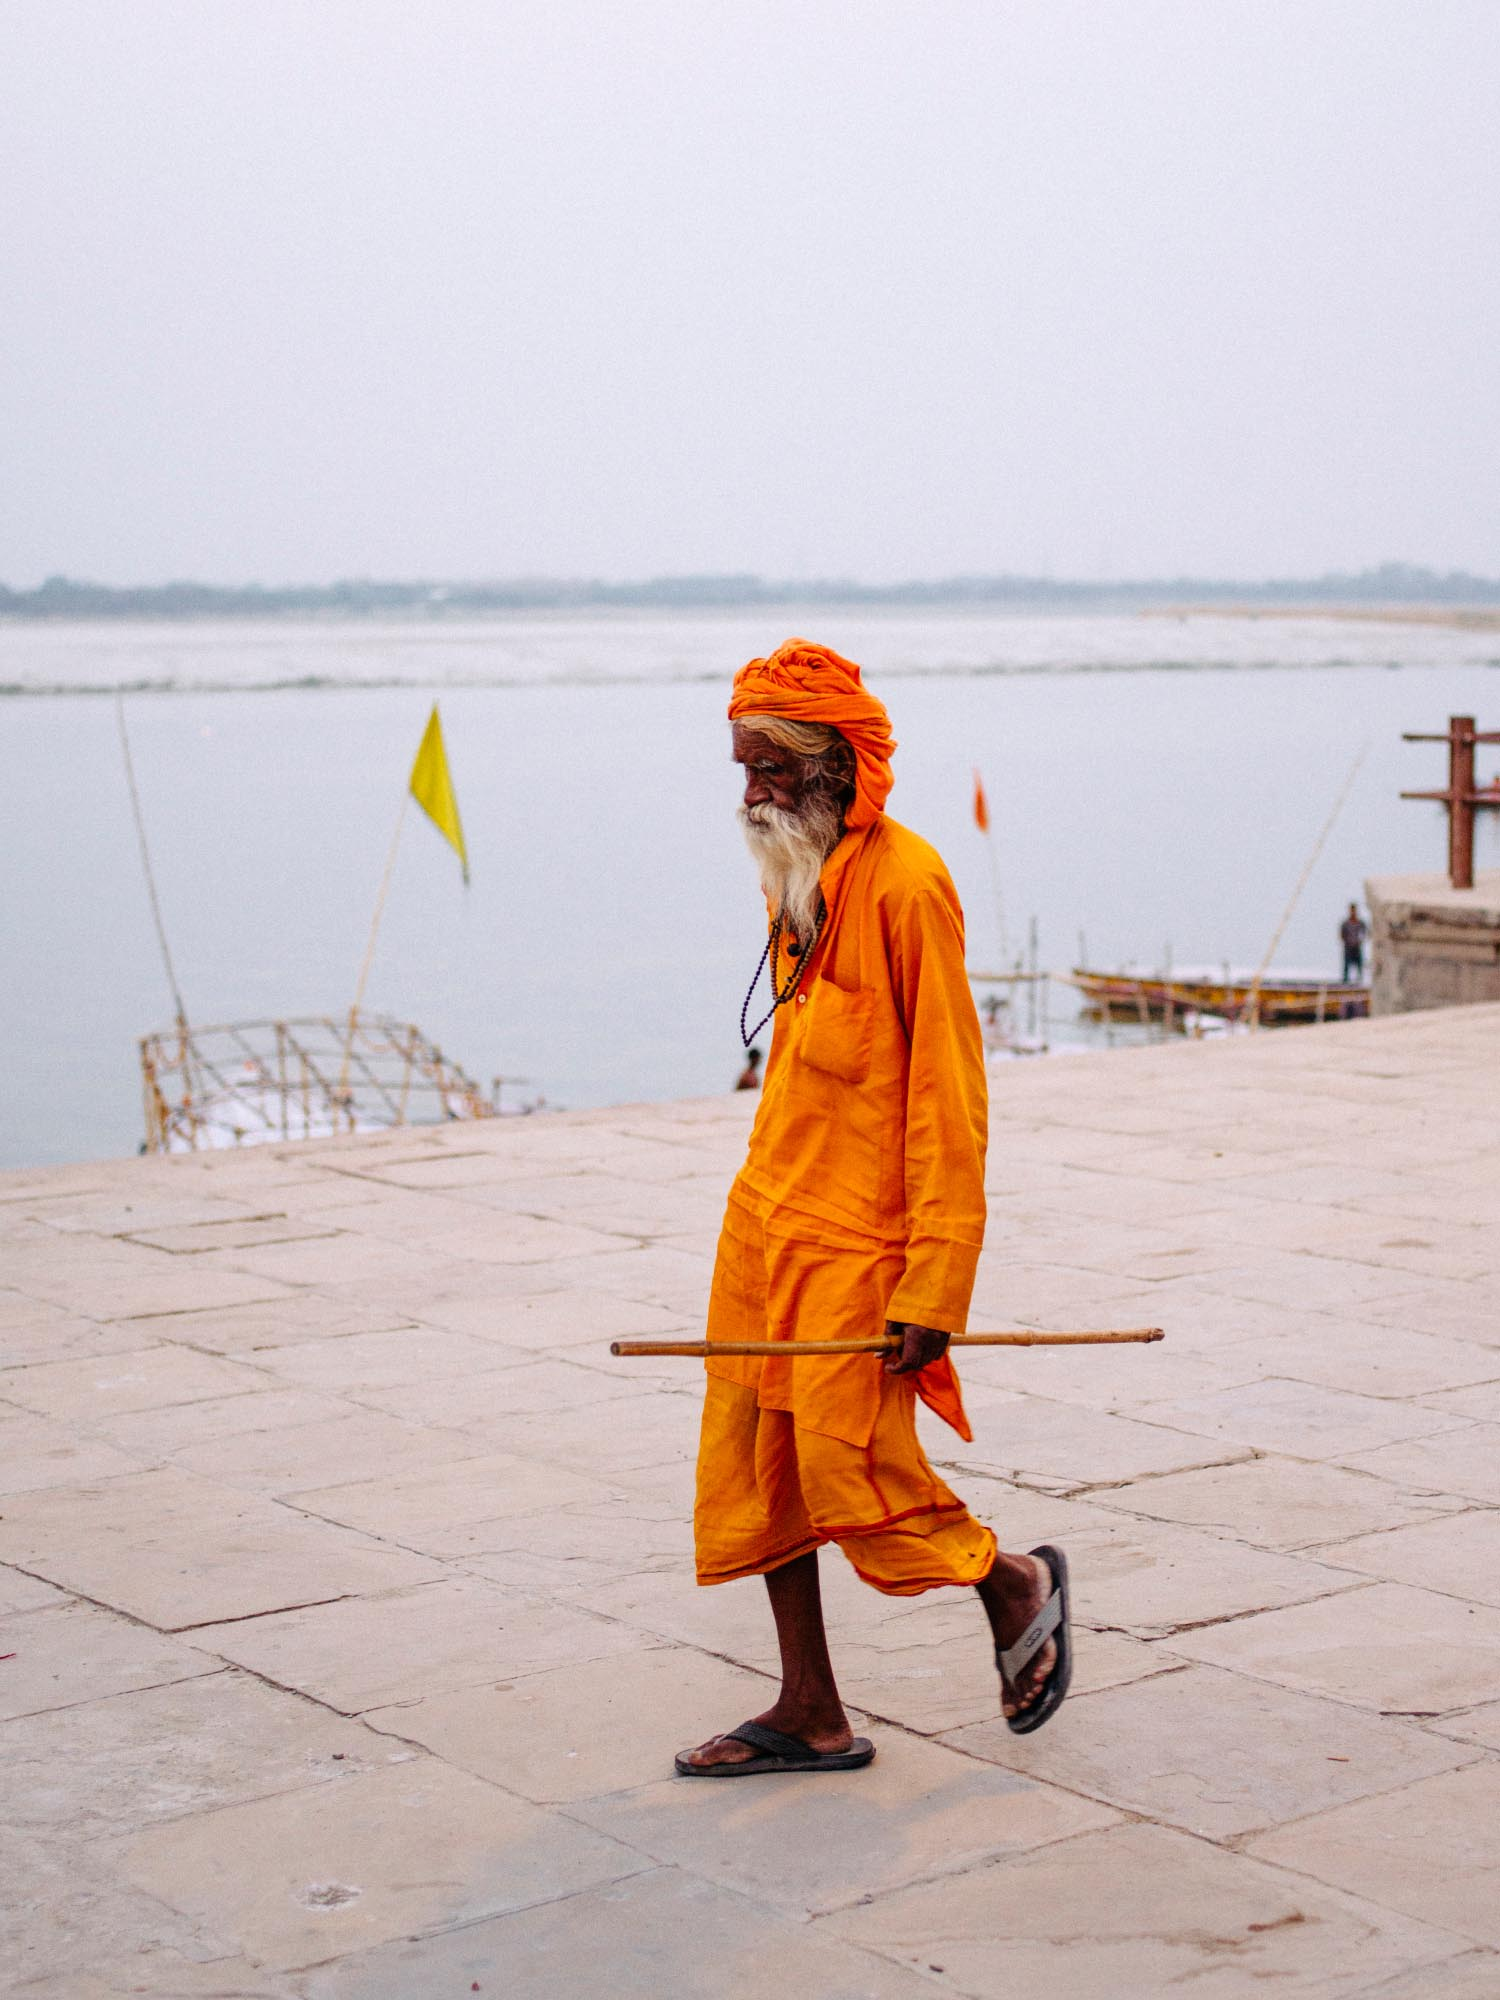 joris-hermans-photography-varanasi-15.jpg